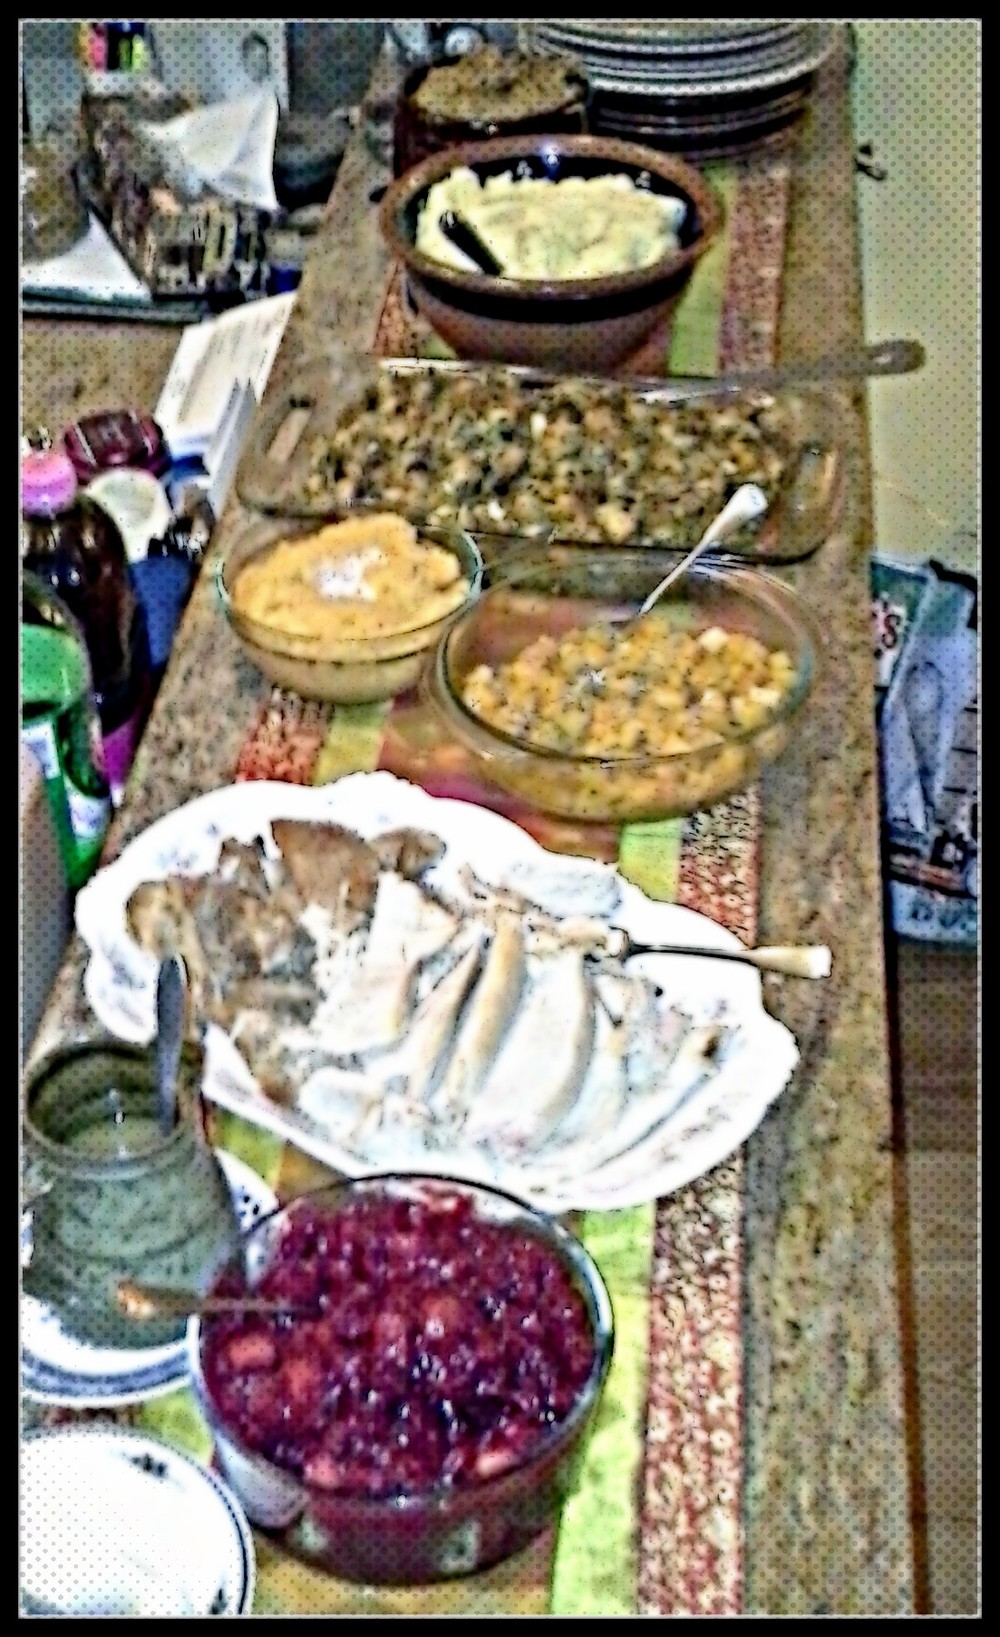 Last year's holiday meal had some competitive elements...that came out of miscommunication about who was cooking what. Either way we ate well!